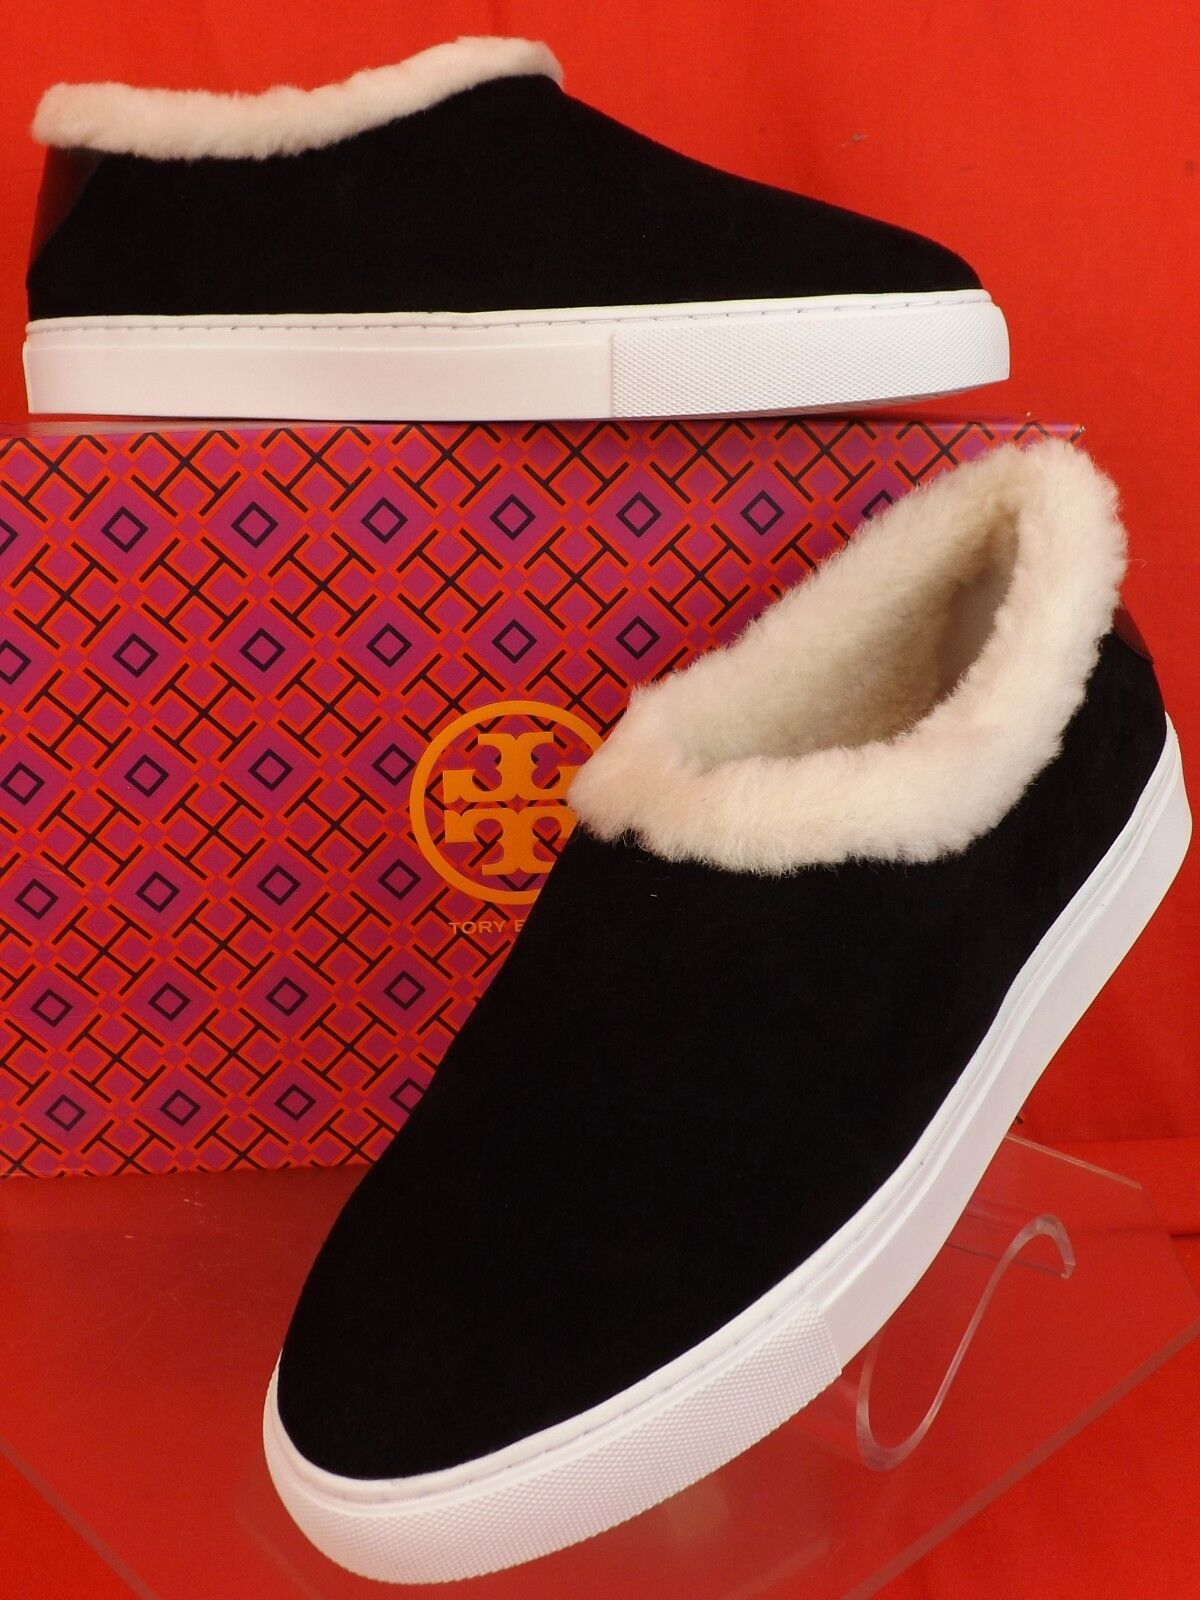 NIB TORY BURCH MILLER   noir  SUEDE SHEARLING  REVA SLIP ON SNEAKERS 7.5 $295